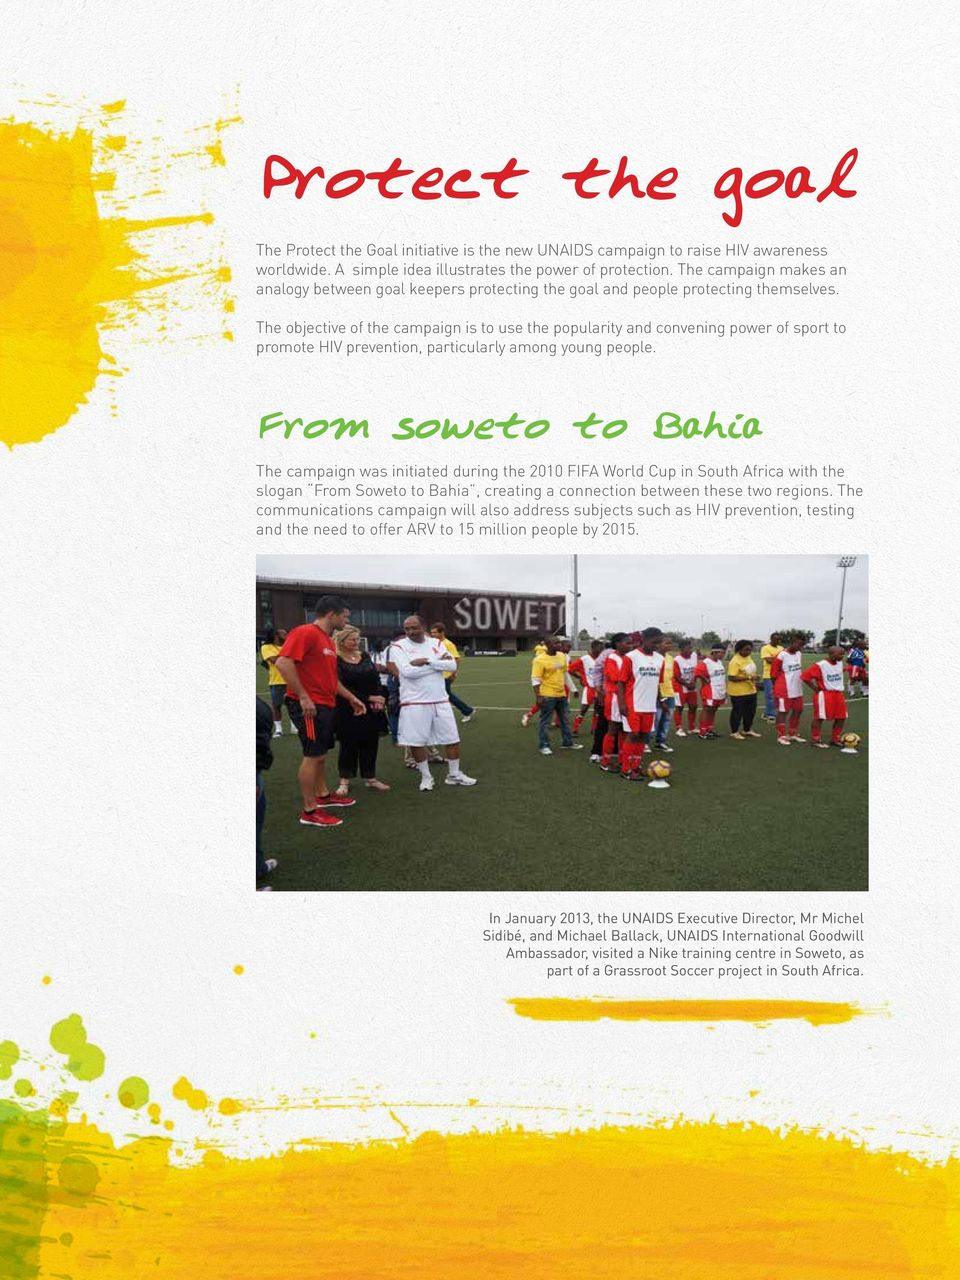 The objective of the campaign is to use the popularity and convening power of sport to promote HIV prevention, particularly among young people.